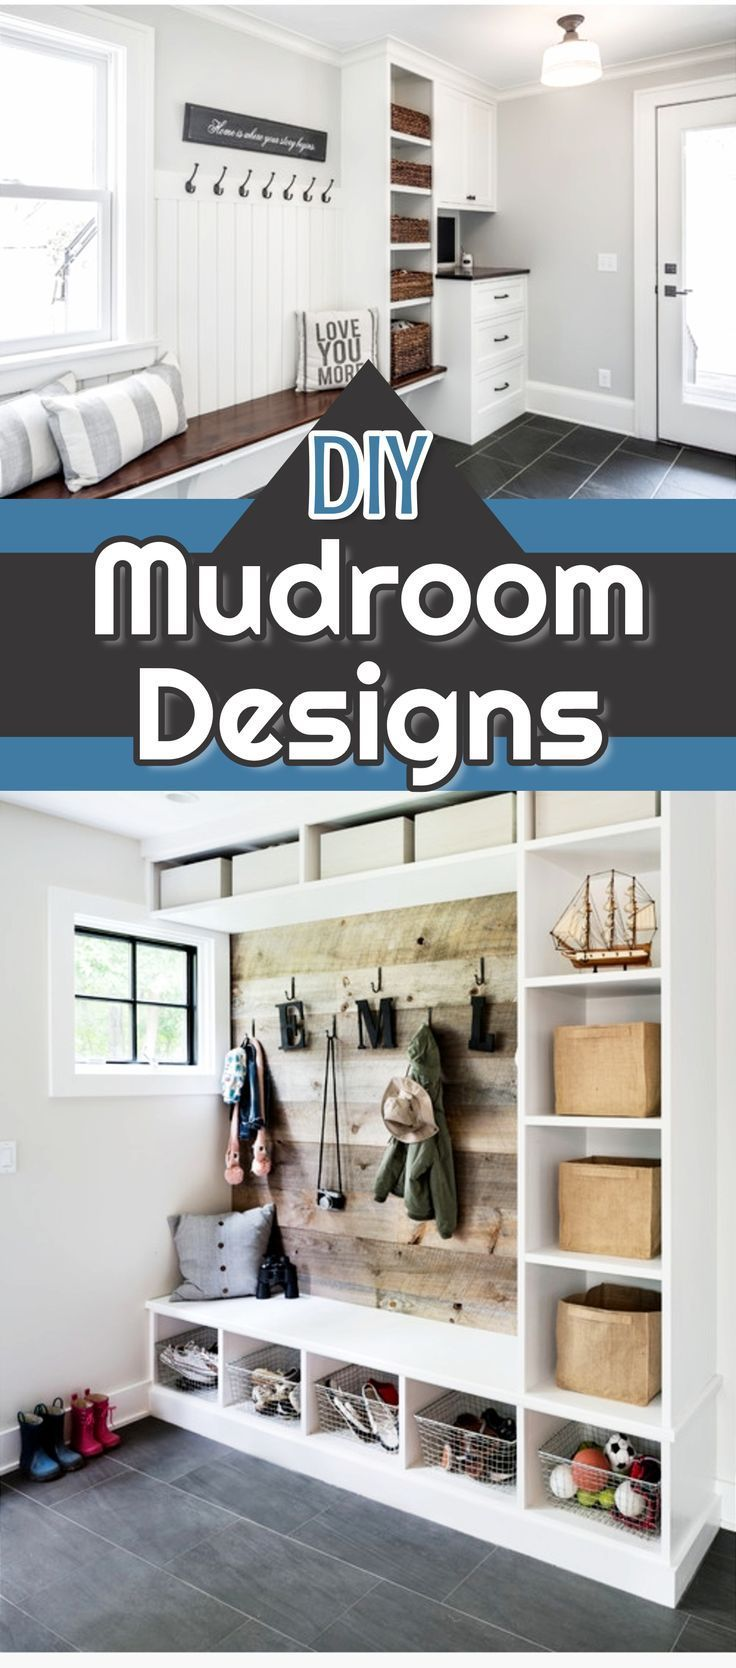 Diy Mud Room Designs And Pictures Of Mudrooms Decorating Ideas We Love Mudroom Cubbies Cabinets Baskets Organization Course